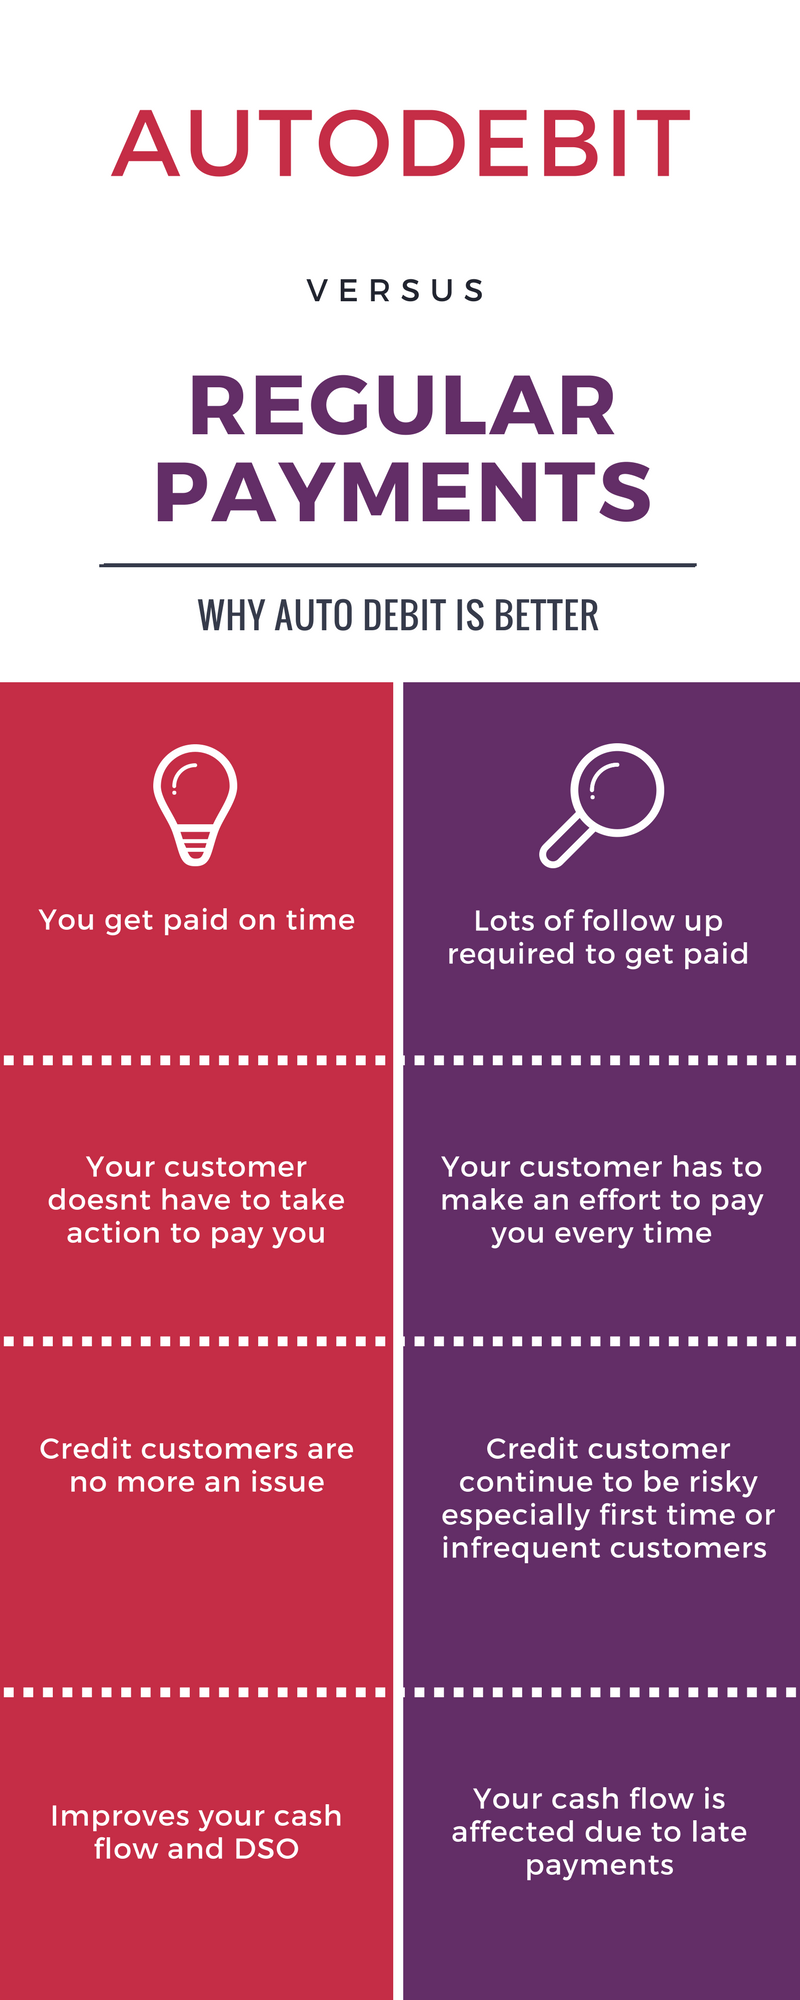 credit customers and Autodevit